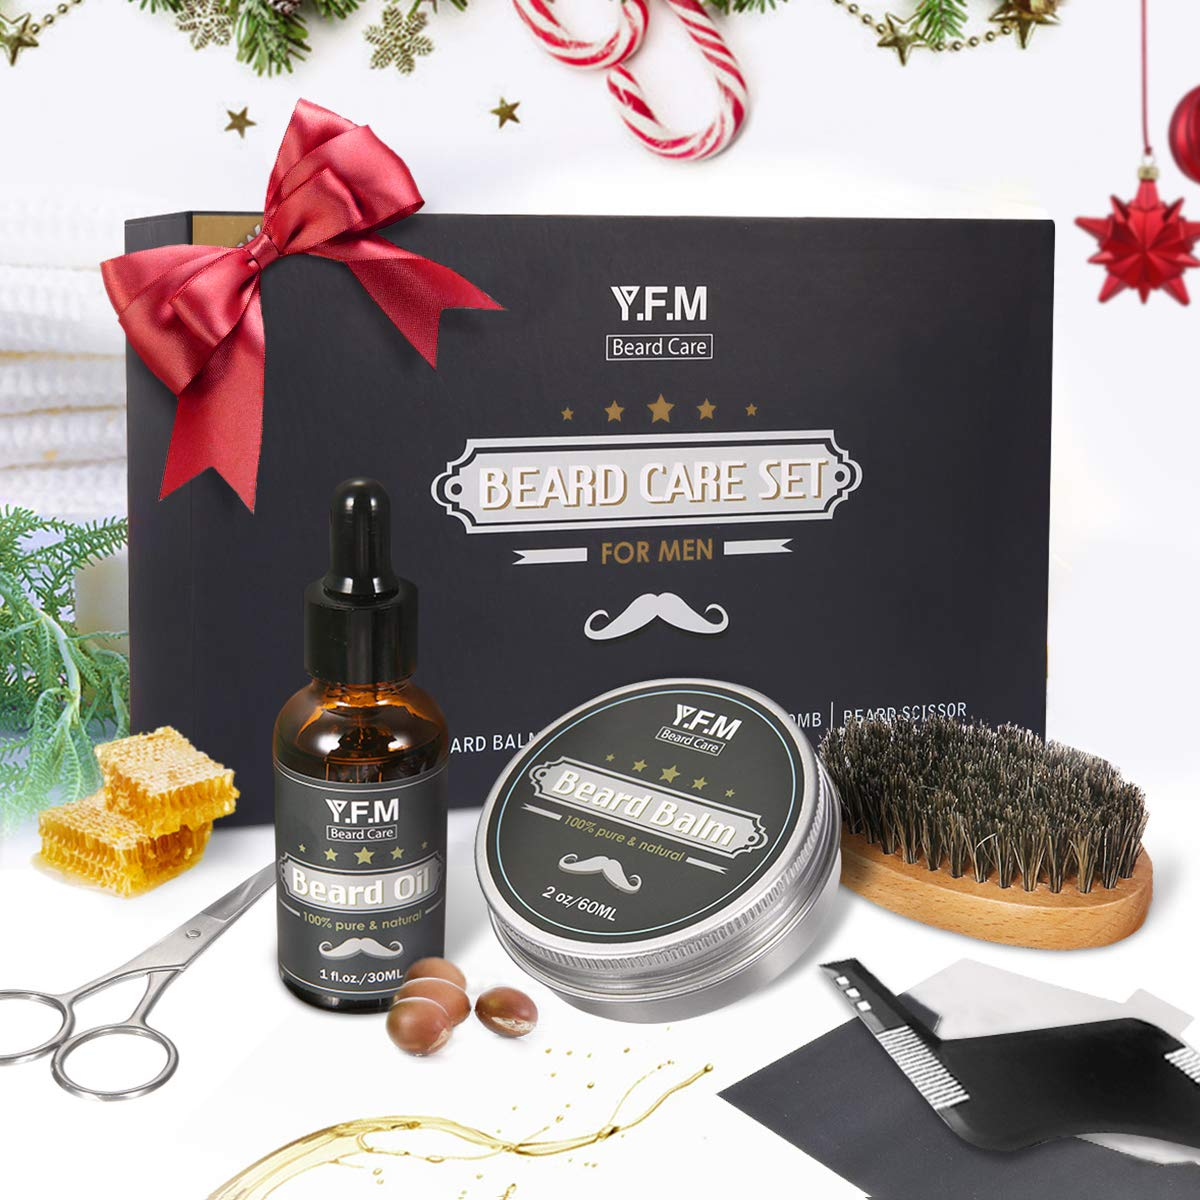 null - Y.F.M Beard Care Grooming & Trimming Kit for Father's Days Gift Men Beard Care Gift Set Beard Conditioners Oil, Beard Shaping Comb, Beard Brush, Mustache Scissors, Beard Balm